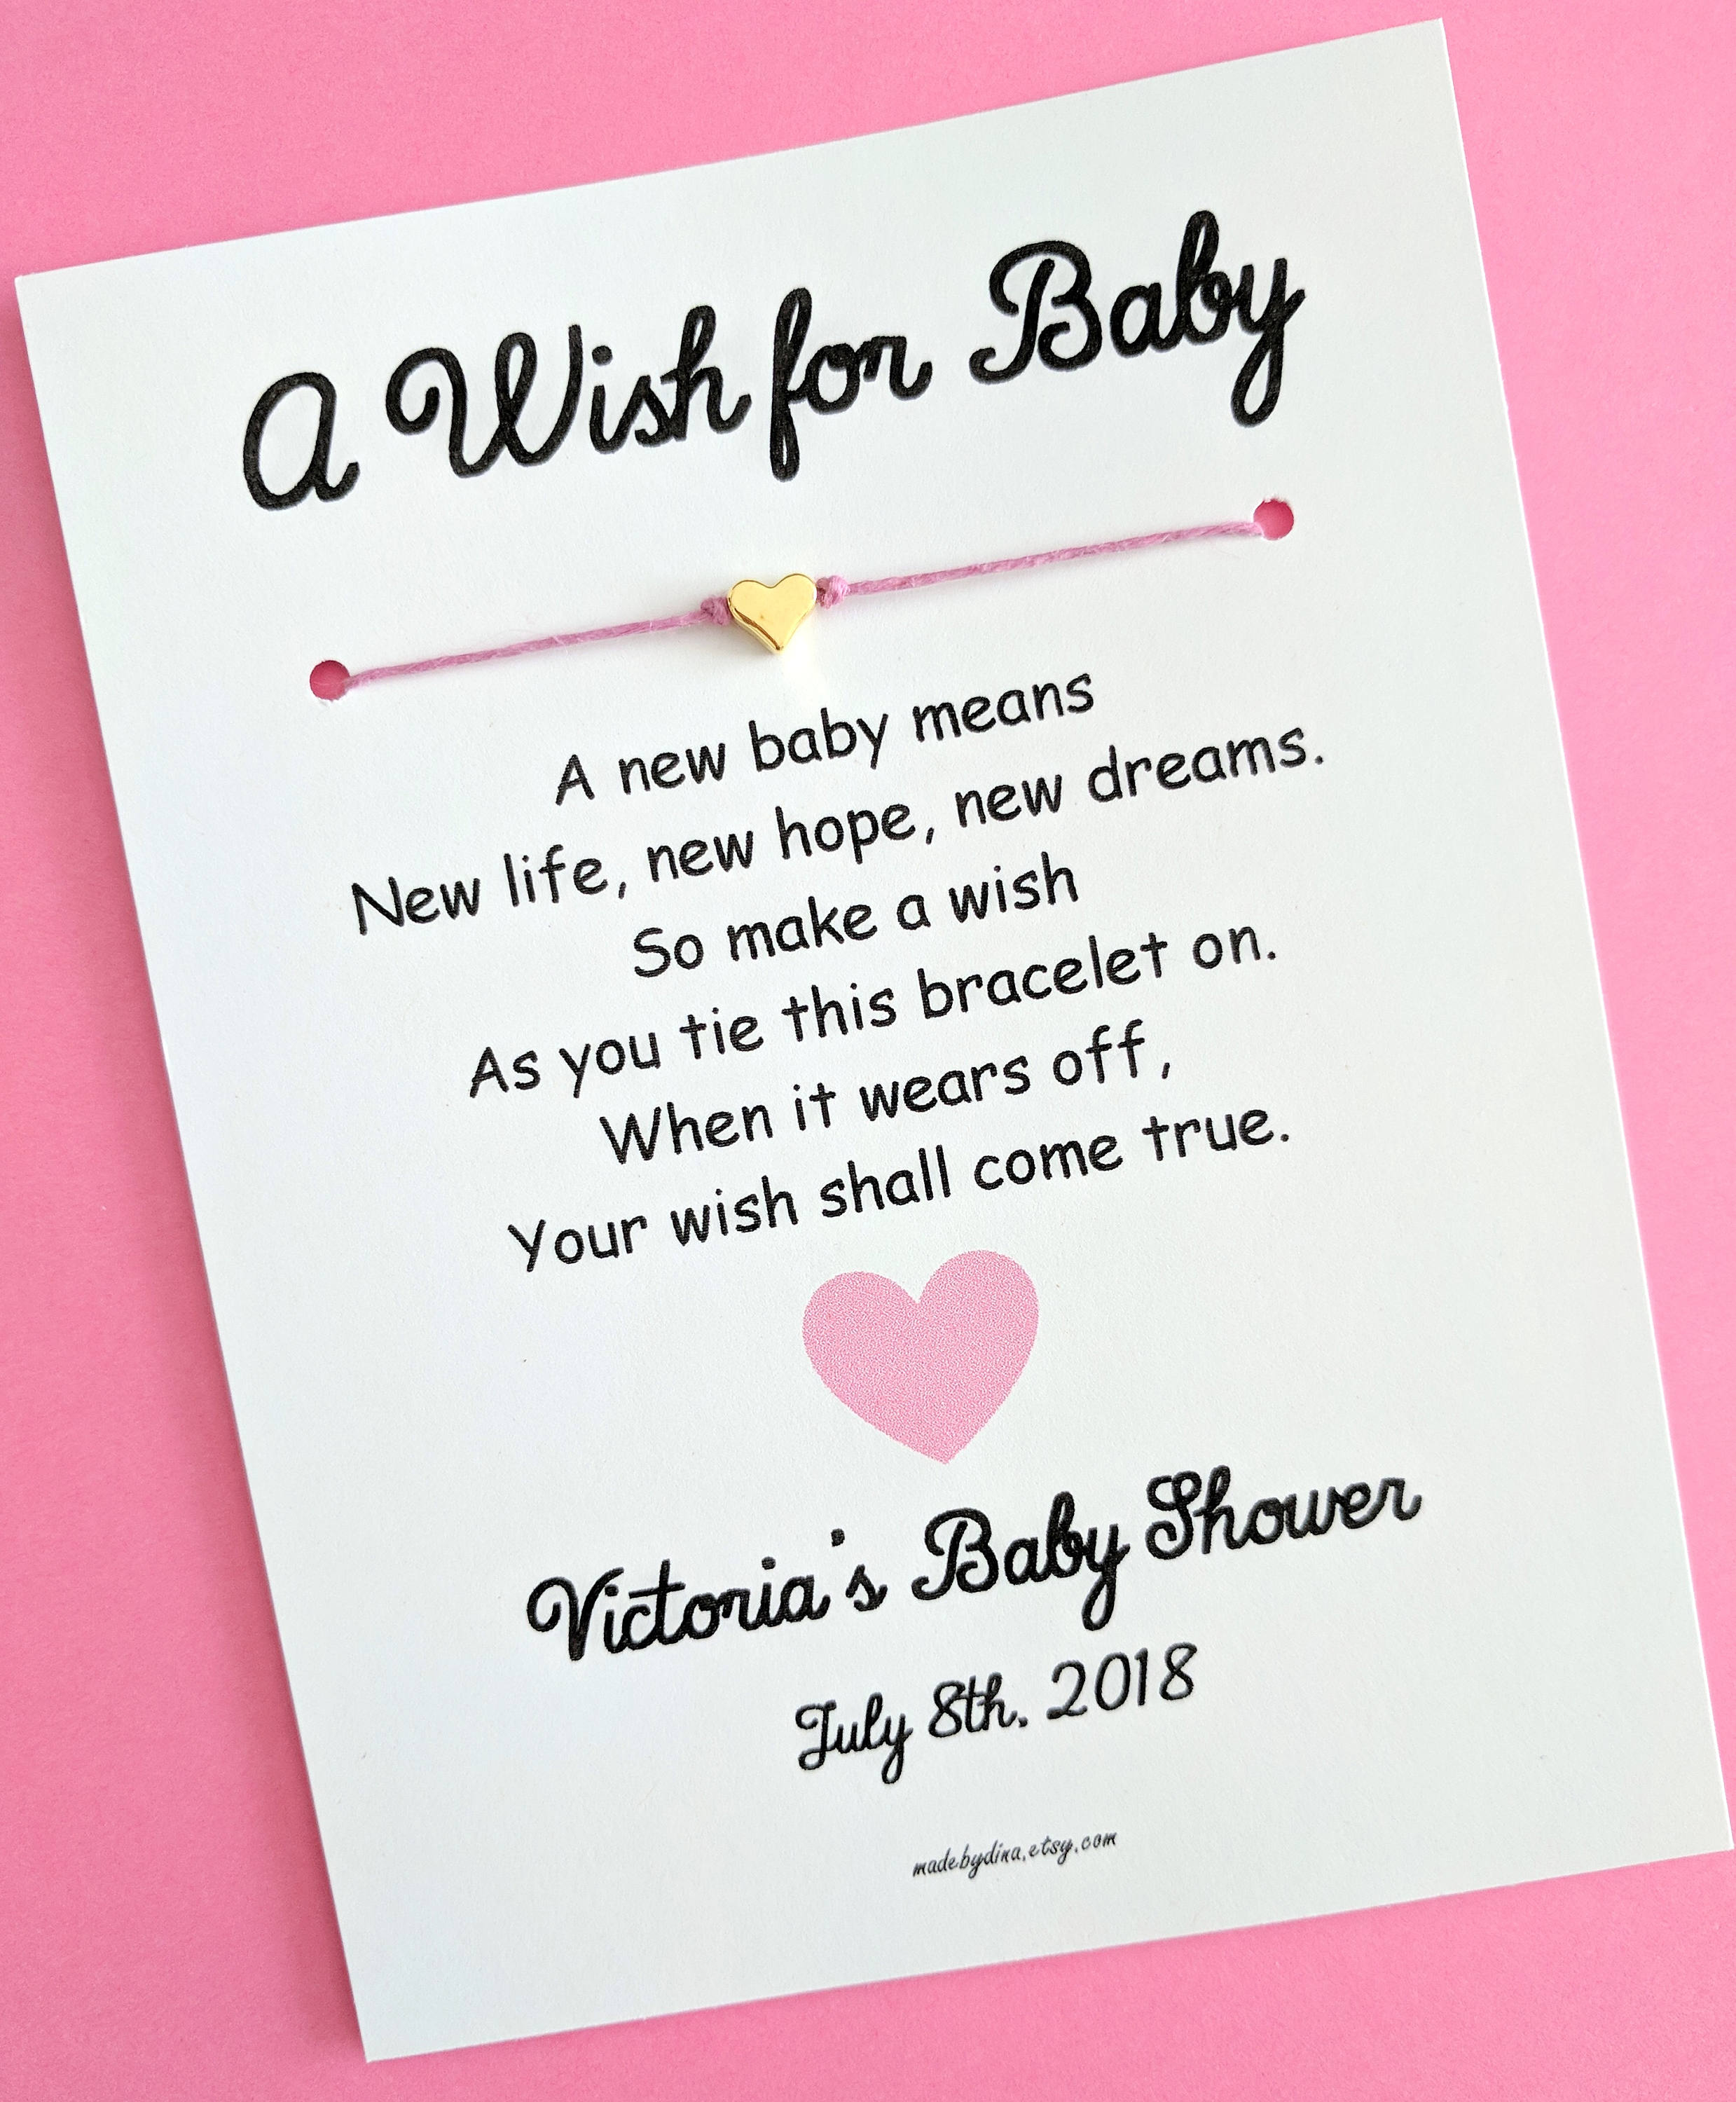 A Wish For Baby Love And Hearts Theme Wish Bracelet Party Etsy